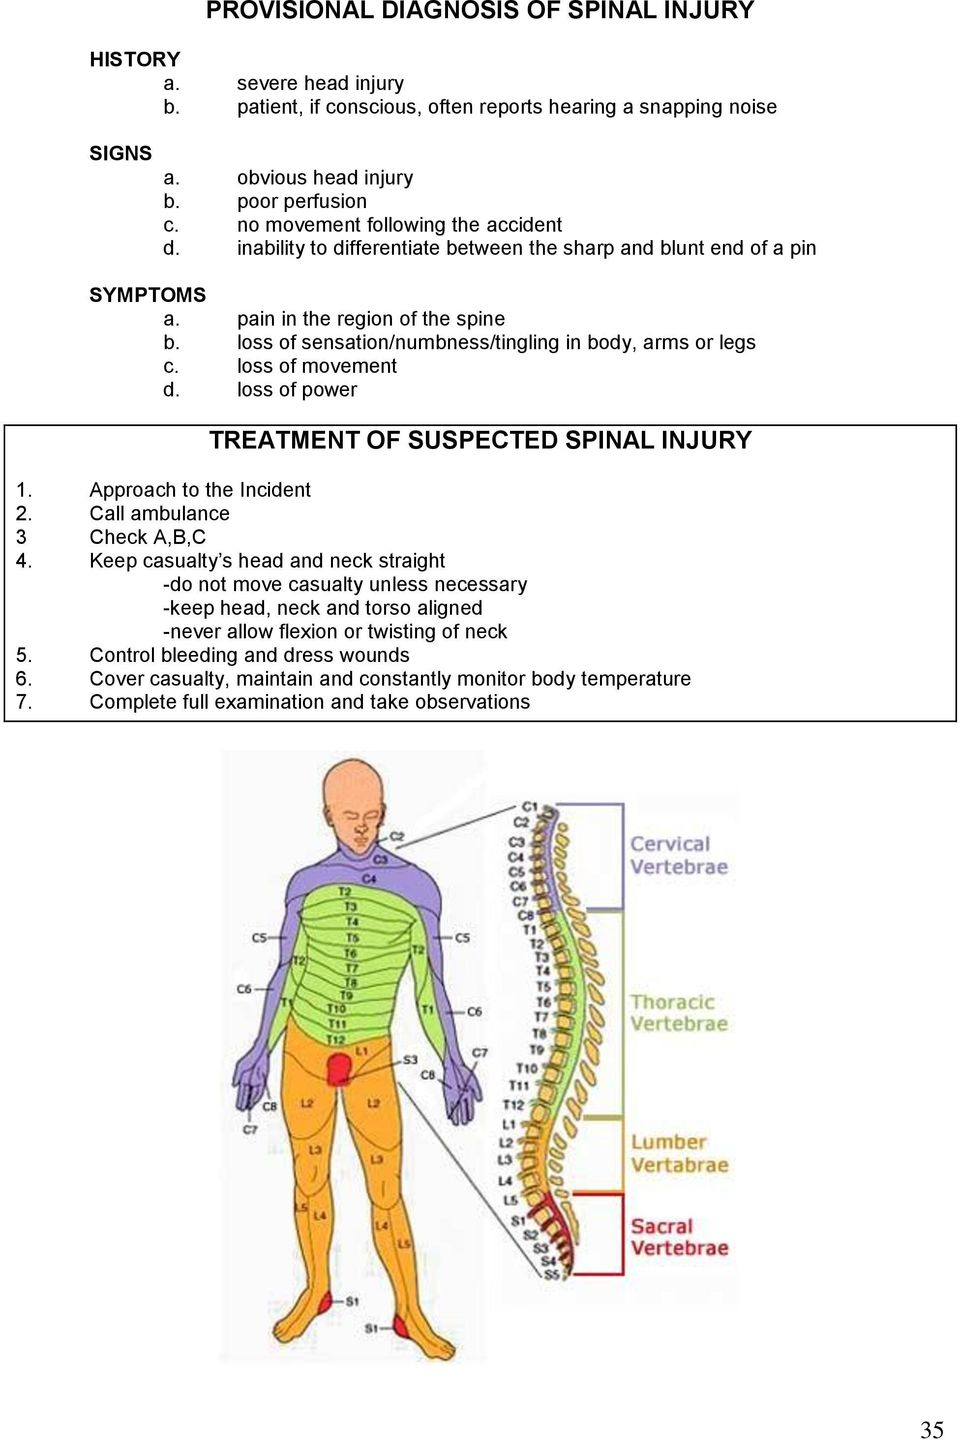 loss of sensation/numbness/tingling in body, arms or legs c. loss of movement d. loss of power TREATMENT OF SUSPECTED SPINAL INJURY 1. Approach to the Incident 2. Call ambulance 3 Check A,B,C 4.